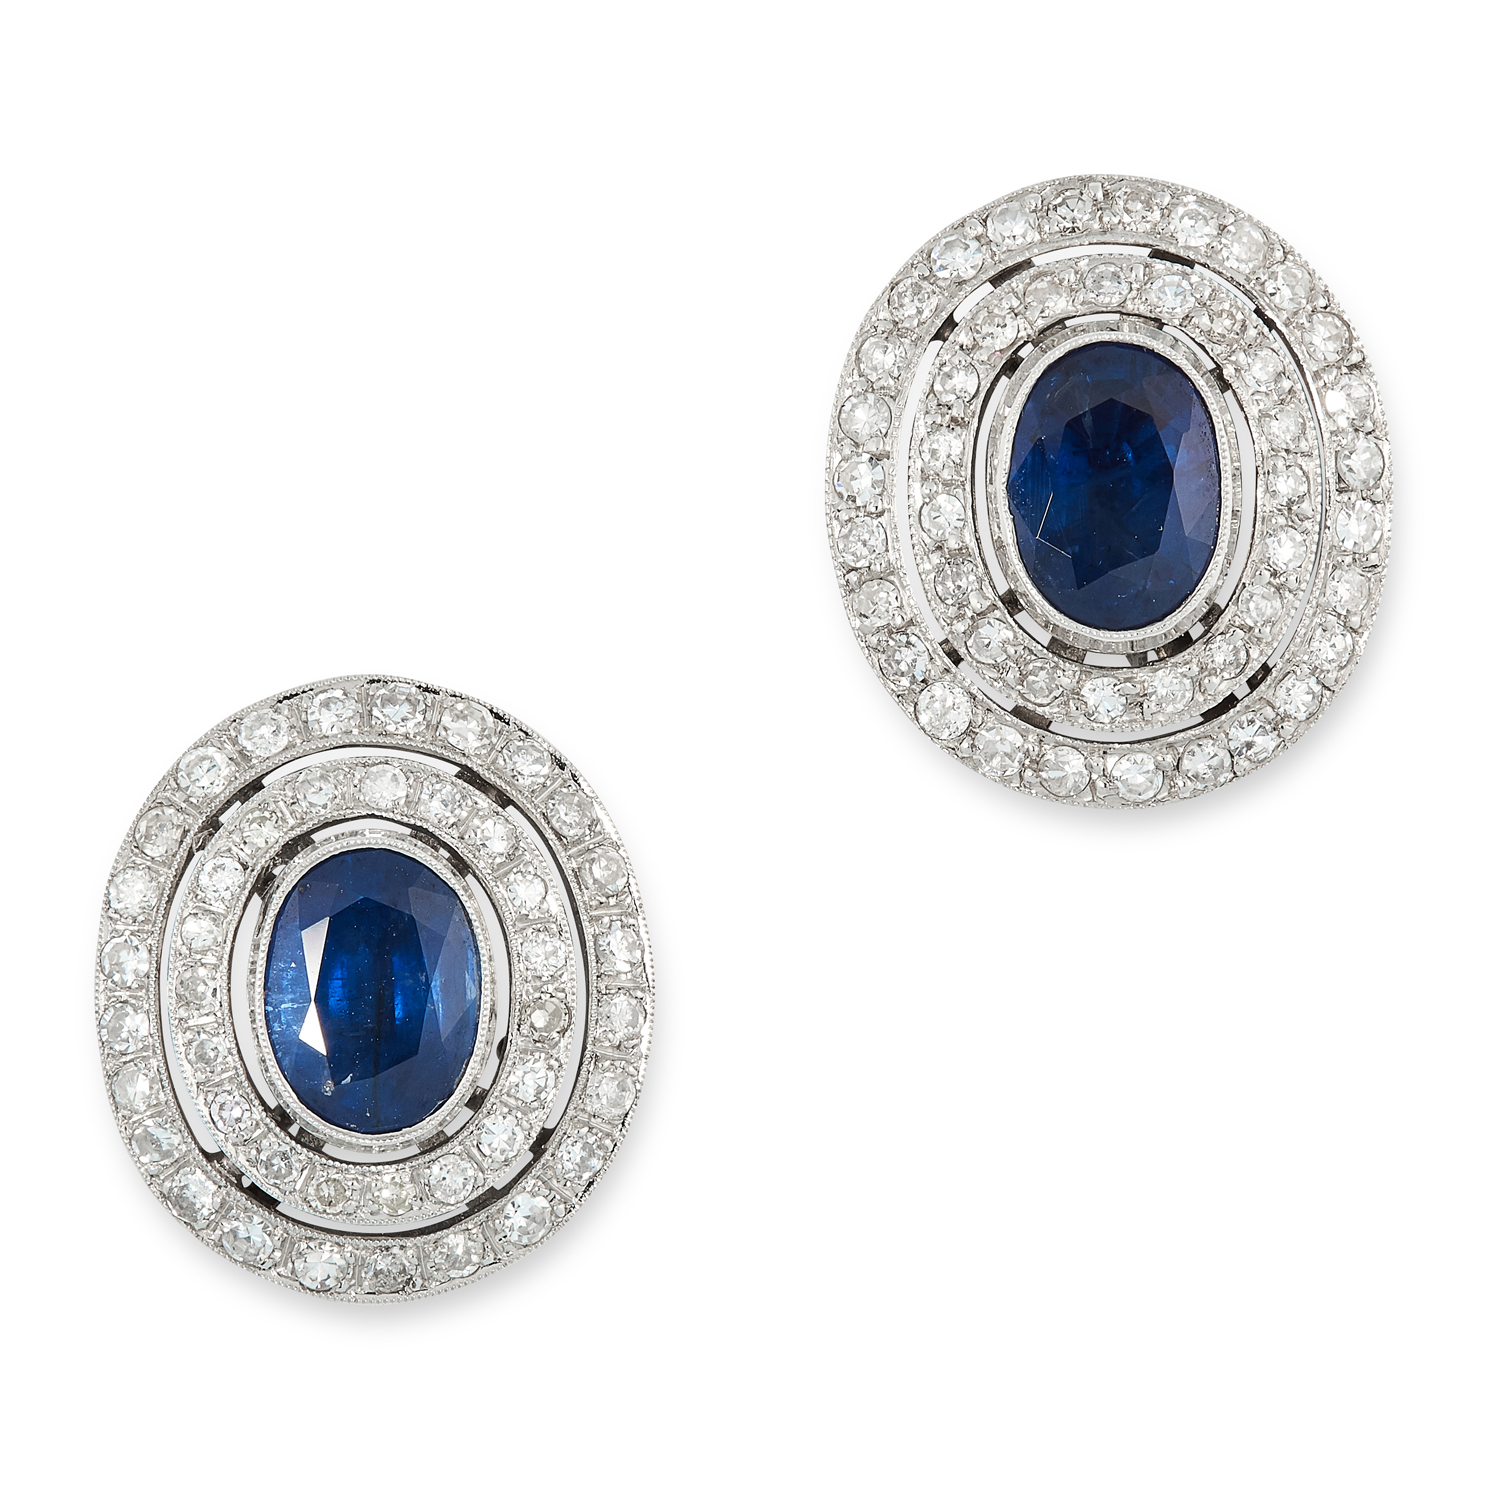 A PAIR OF SAPPHIRE AND DIAMOND CLUSTER EARRINGS in 18ct gold, comprising of an oval cut sapphire